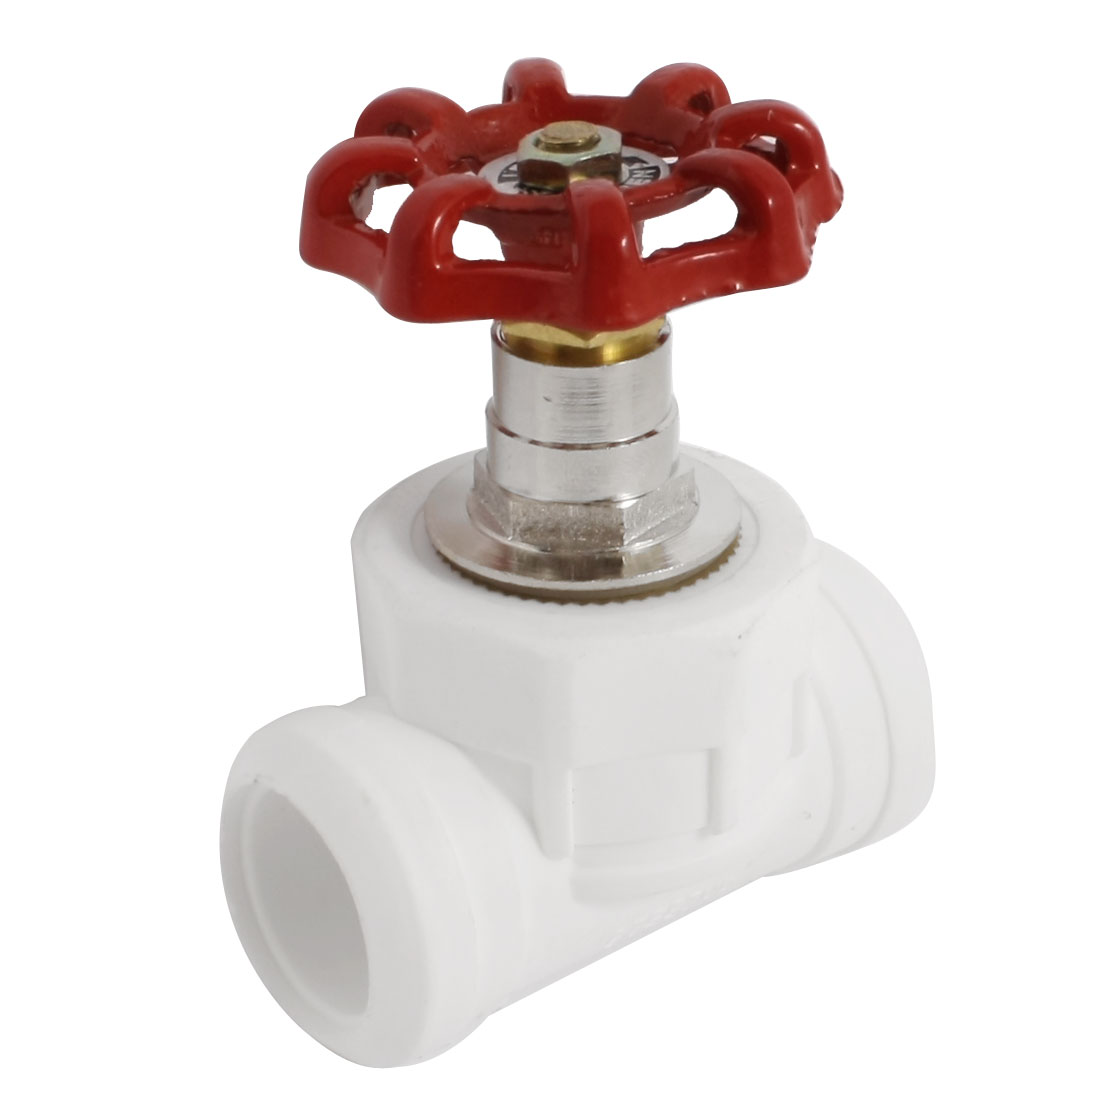 Water Supply 26mm to 26mm Red Handwheel PPR Socket Joint Stop Valve